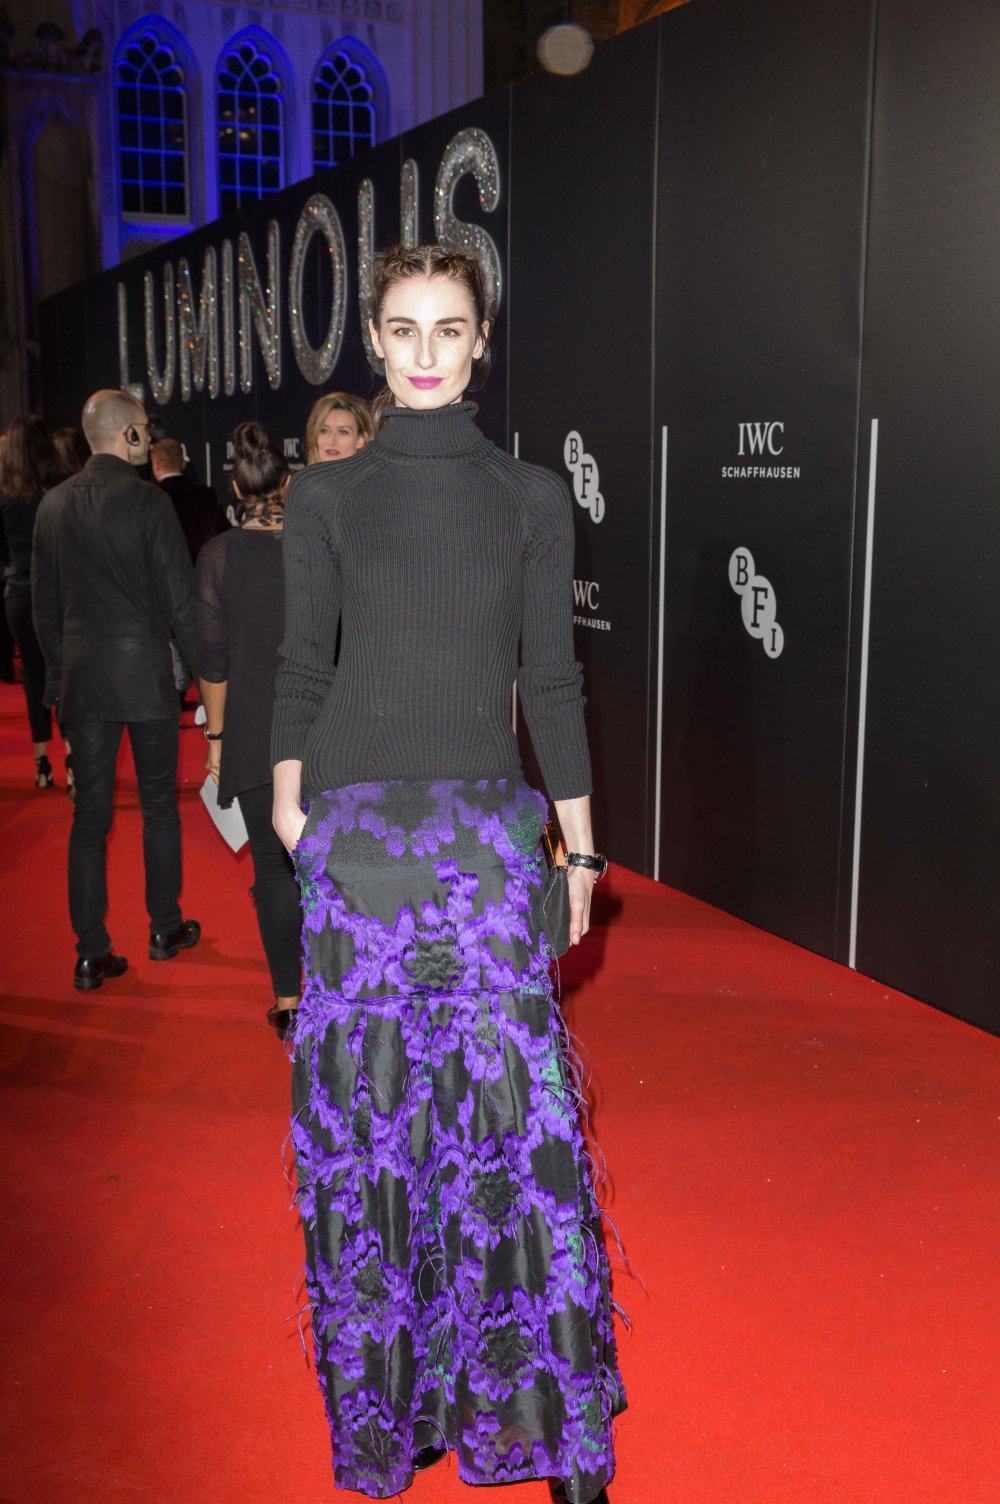 Erin O'Connor attends the BFI LUMINOUS gala 2015